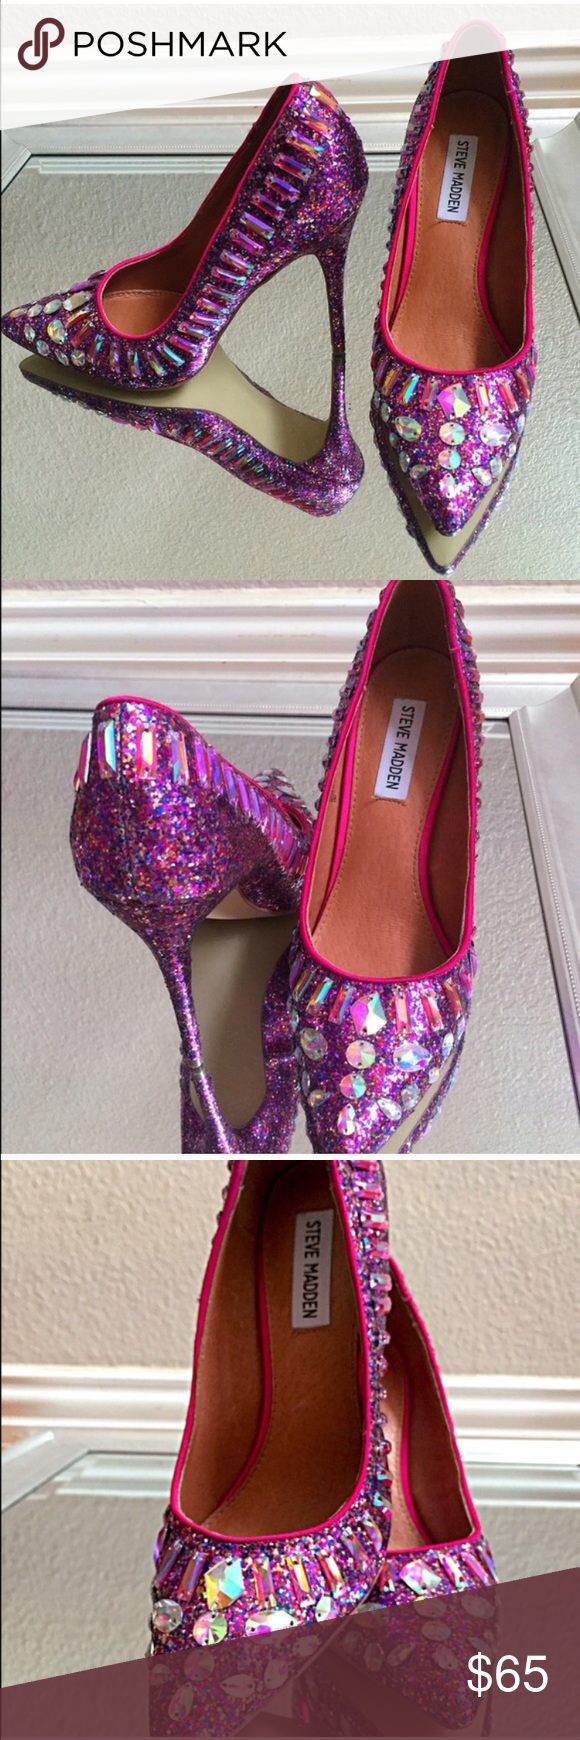 11fc5ff2d3ad8 Steve Madden Galaxy Heels. Fuchsia Steven Madden rhinestone heels. Tried on  one time and never worn outside. Comes with original box and packaging.